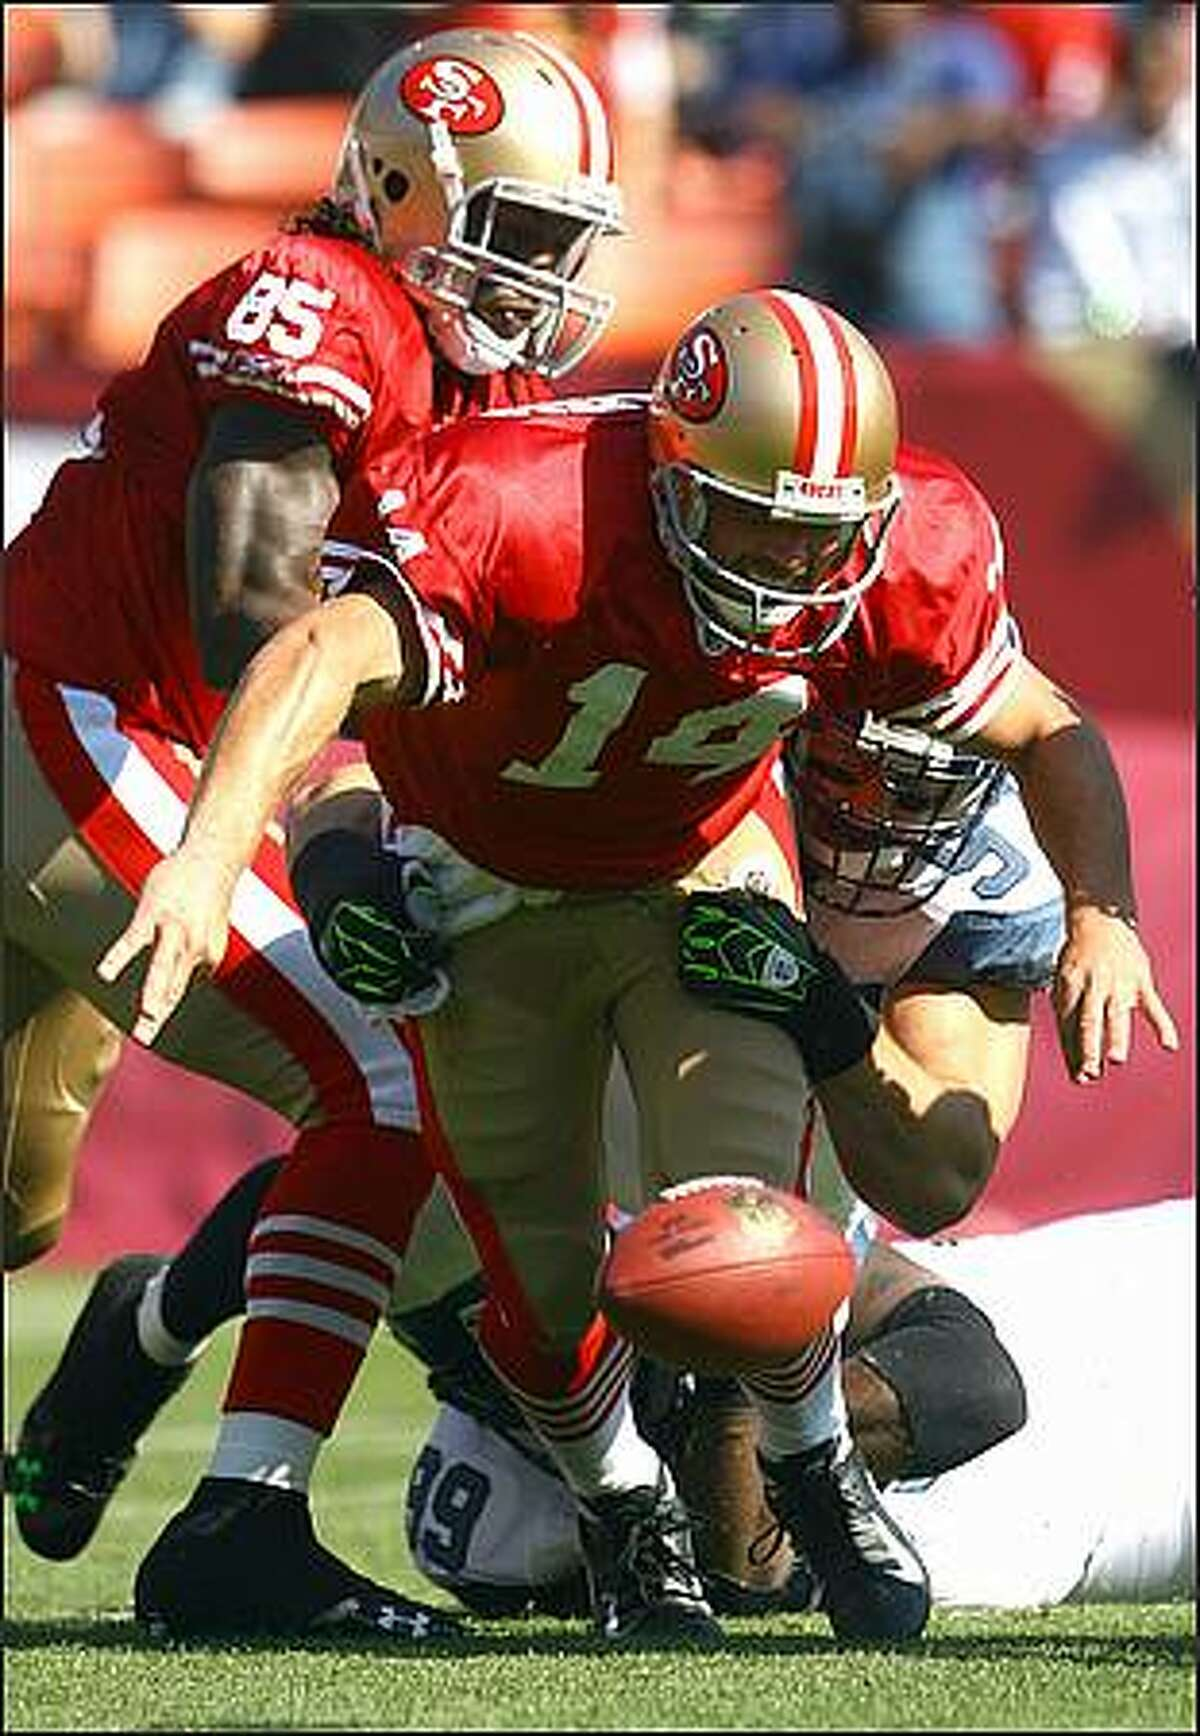 Quarterback J.T. O'Sullivan of the San Francisco 49ers fumbles the ball in the first quarter against the Seattle Seahawks at Candlestick Park.(Photo by Jeff Gross/Getty Images)